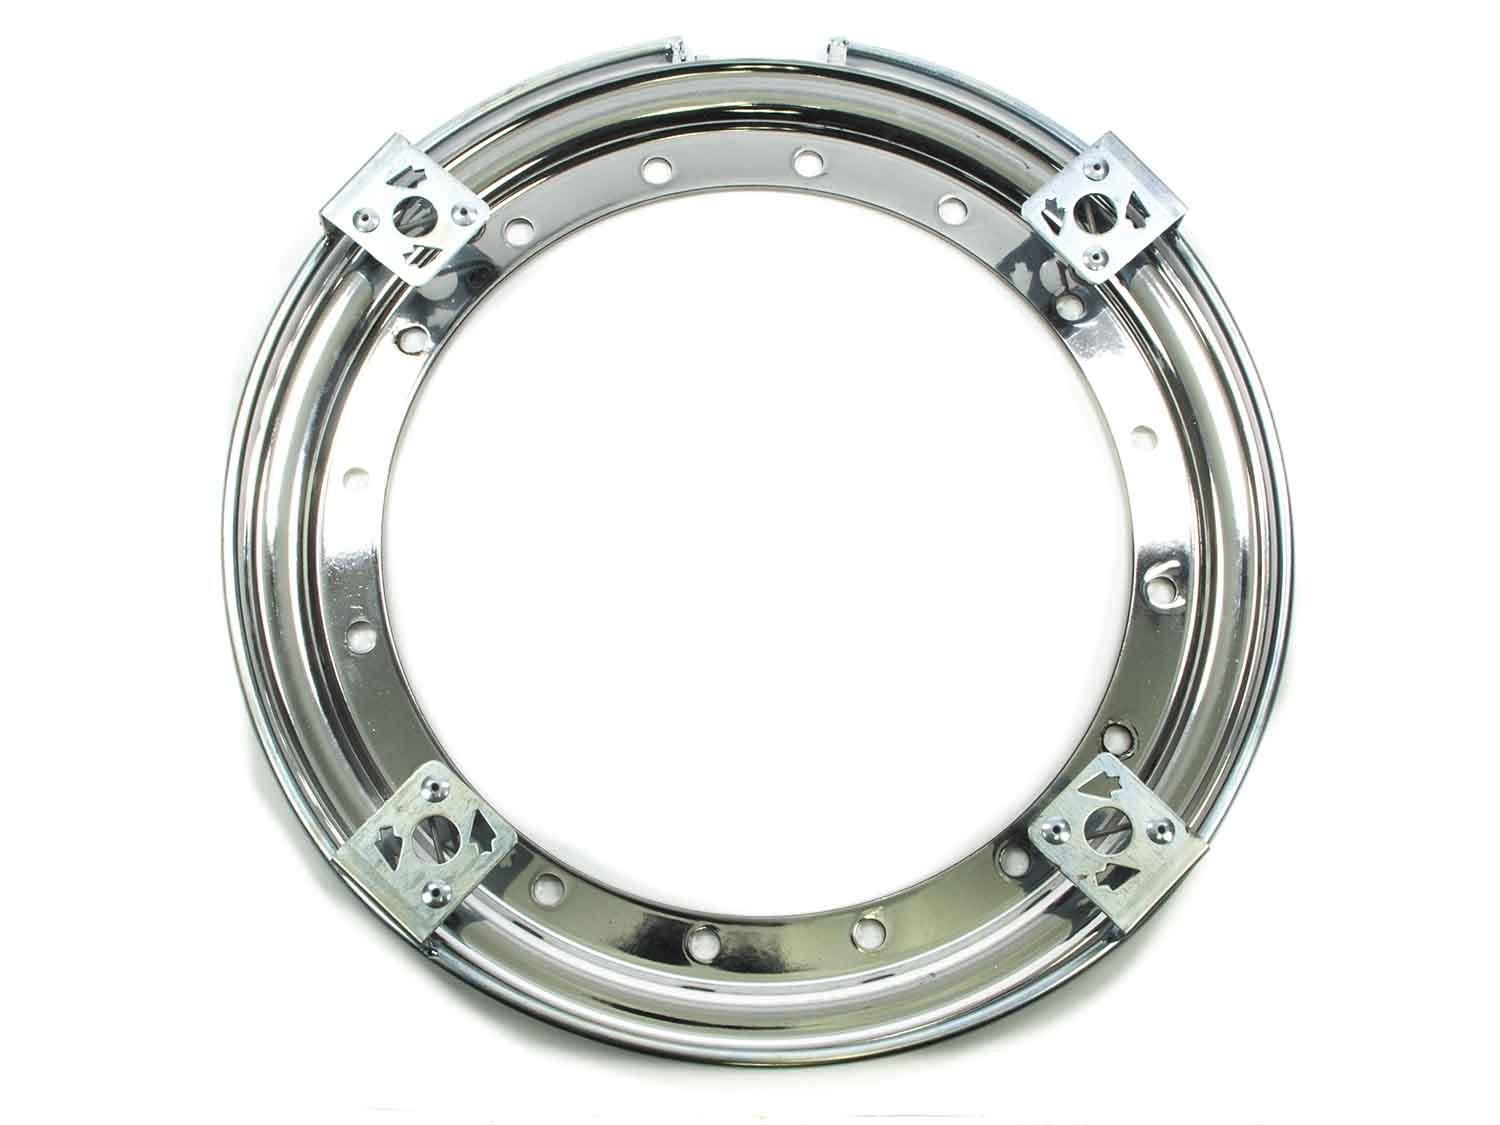 Aero Race 13in Outer Bead Lock Ring Chrome Wheel